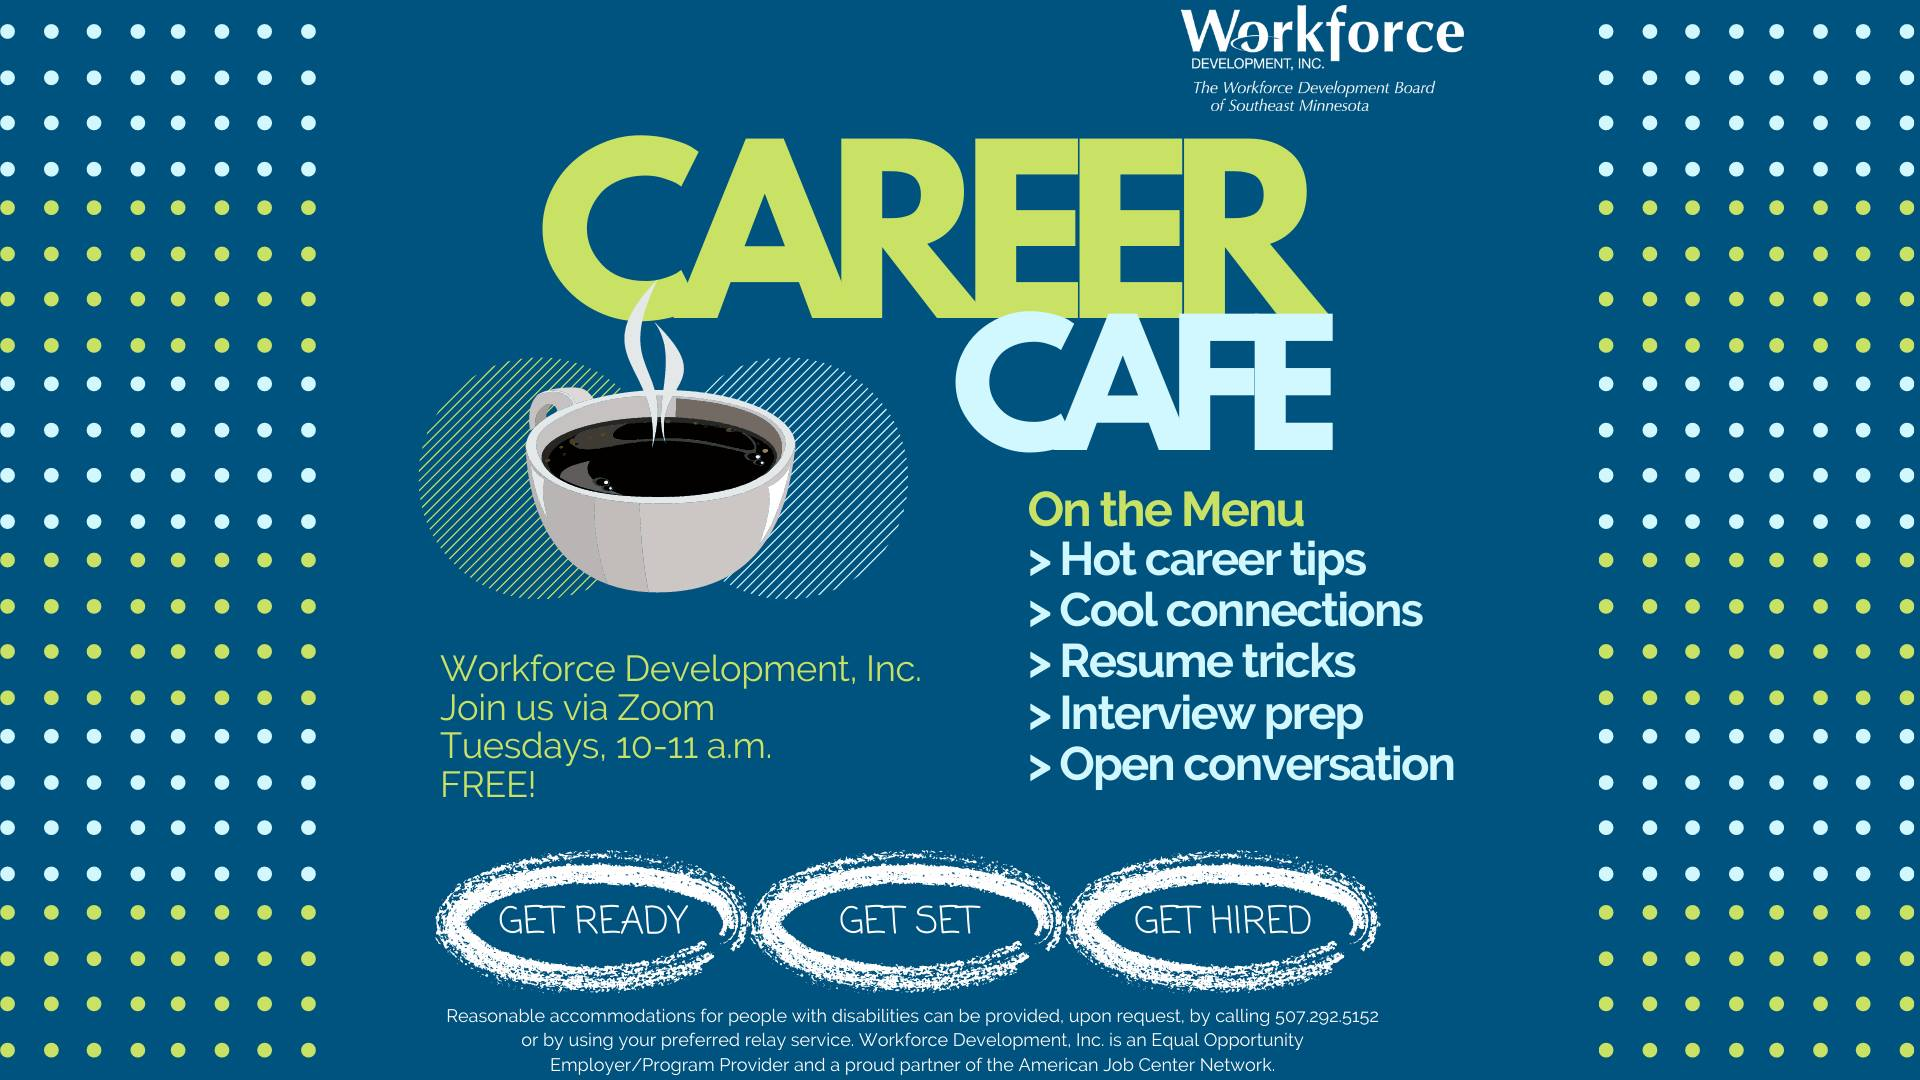 Career Café: Diversity in the Workplace